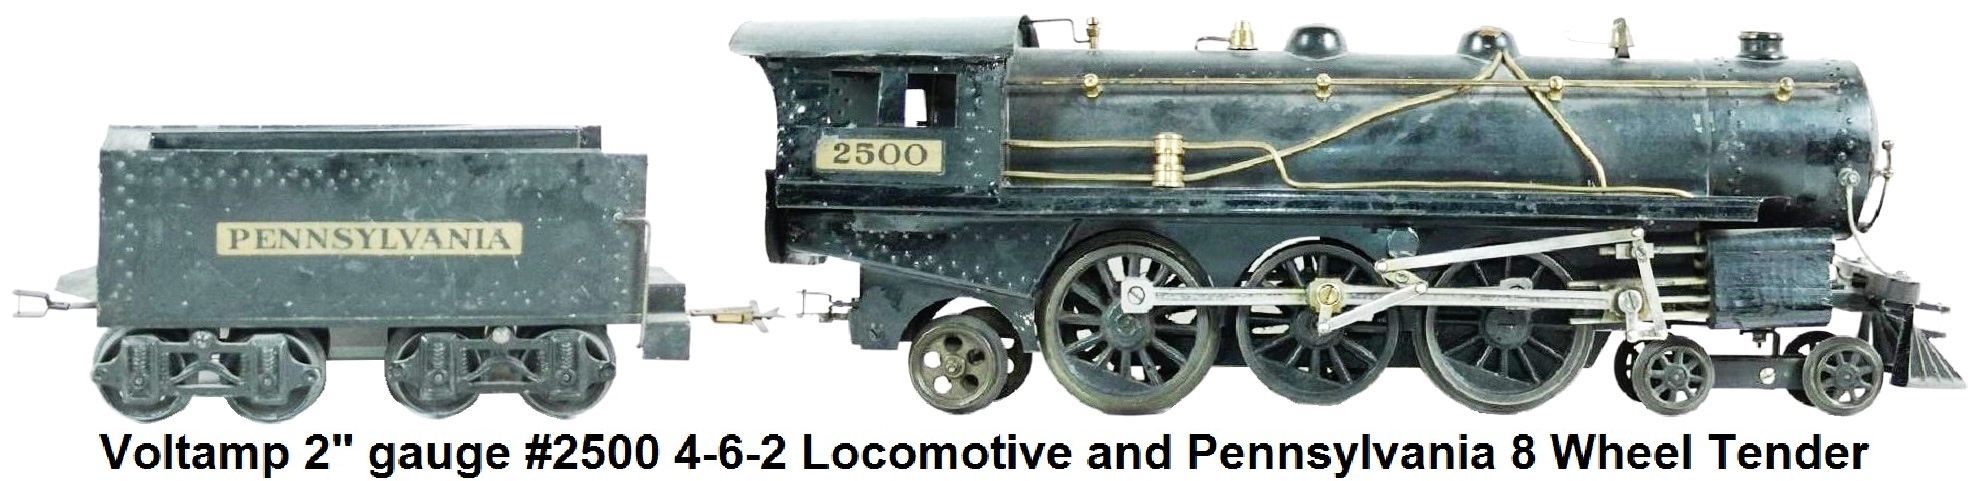 Voltamp 2 inch gauge #2500 4-6-2 Locomotive with Pennsylvania Tender